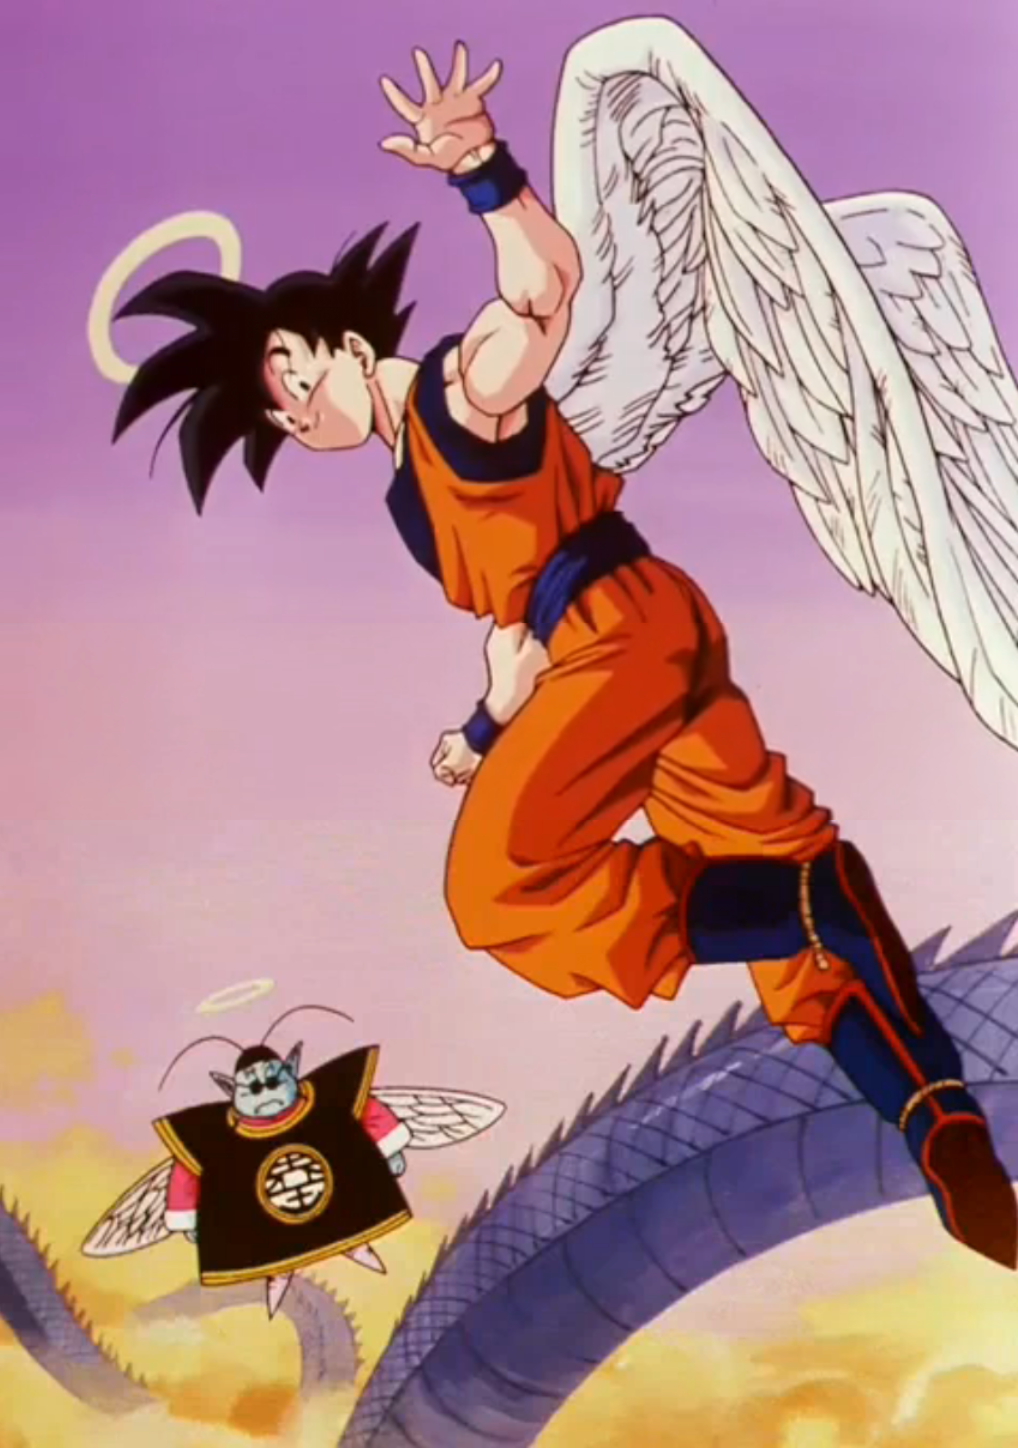 Que Paso Con Don King >> We Were Angels | Dragon Ball Wiki | FANDOM powered by Wikia